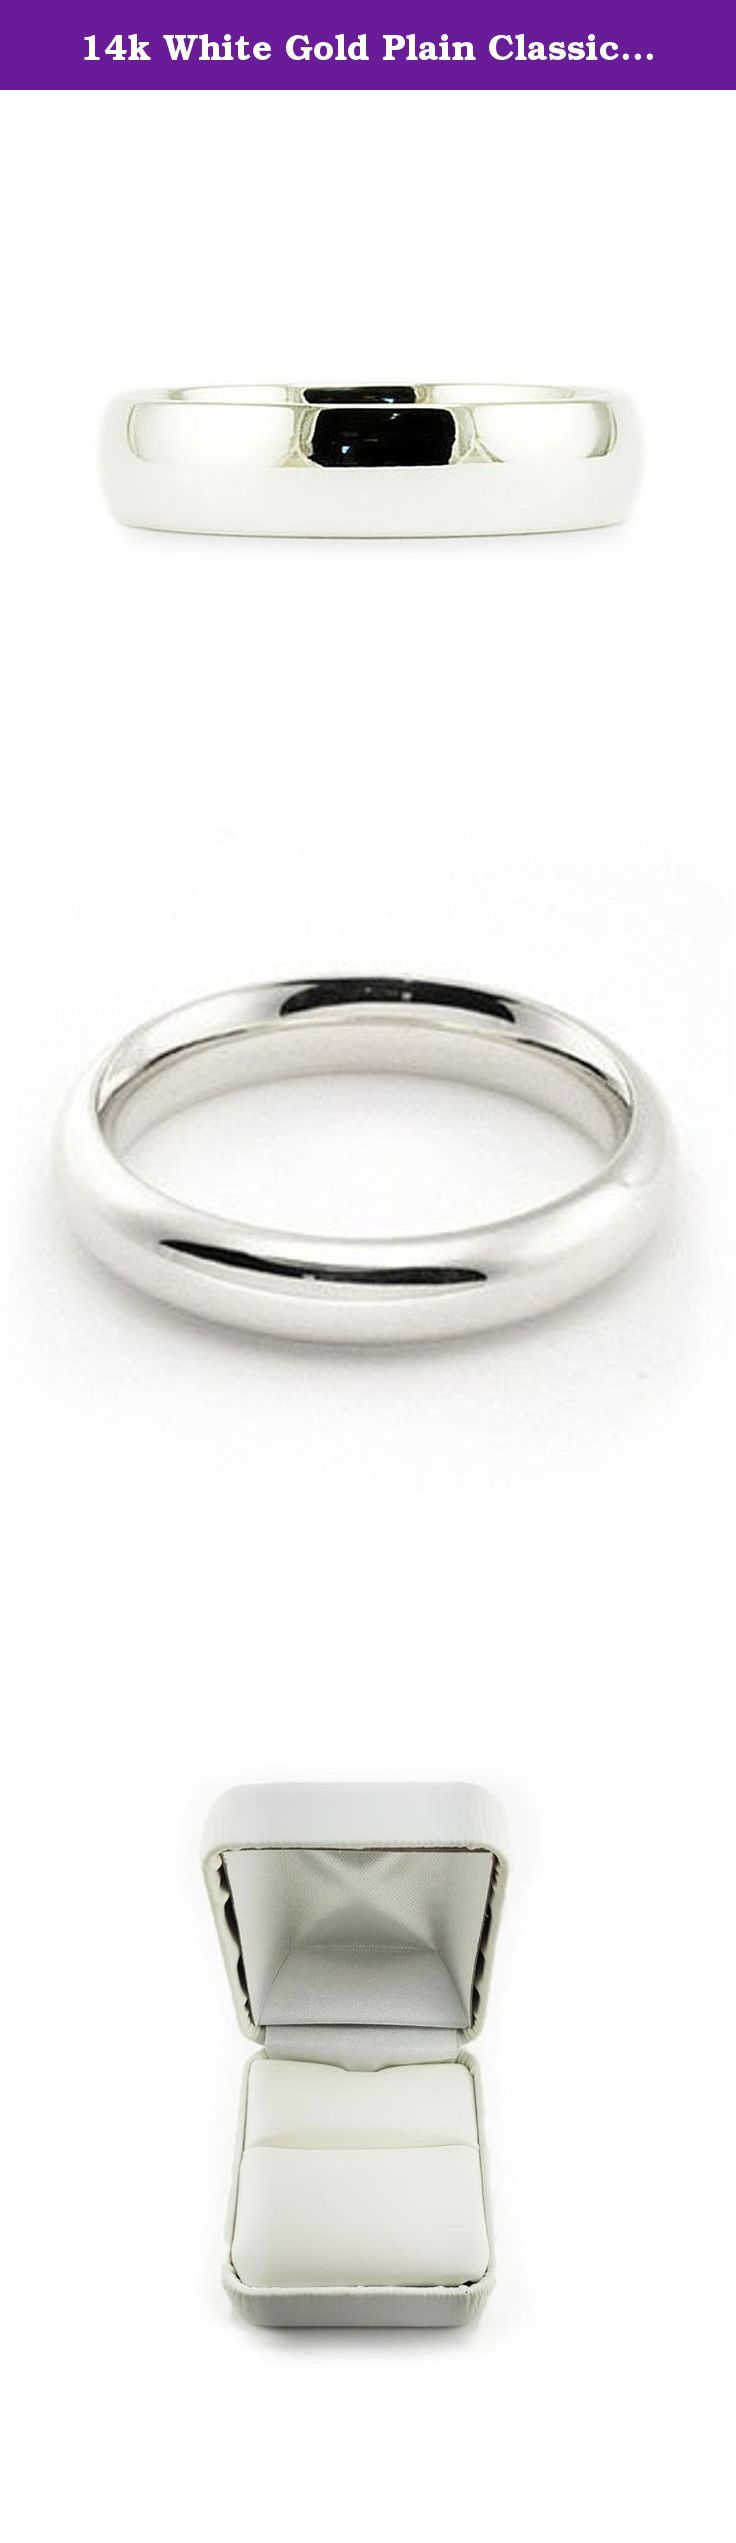 14k White Gold Plain Classic 4mm COMFORT FIT WEDDING BAND size 9. This beautiful classic band has a slightly rounded body, bright finish and is comfort fit. The comfort fit design features a rounded polished interior that allows the ring to slide easily and rest comfortably on the finger. Caring For Your Jewelry To keep your jewelry shining and scratch-free, avoid contact with harsh chemicals and chlorine. To clean gold jewelry, use warm water and a mild soap. We do not suggest using a…